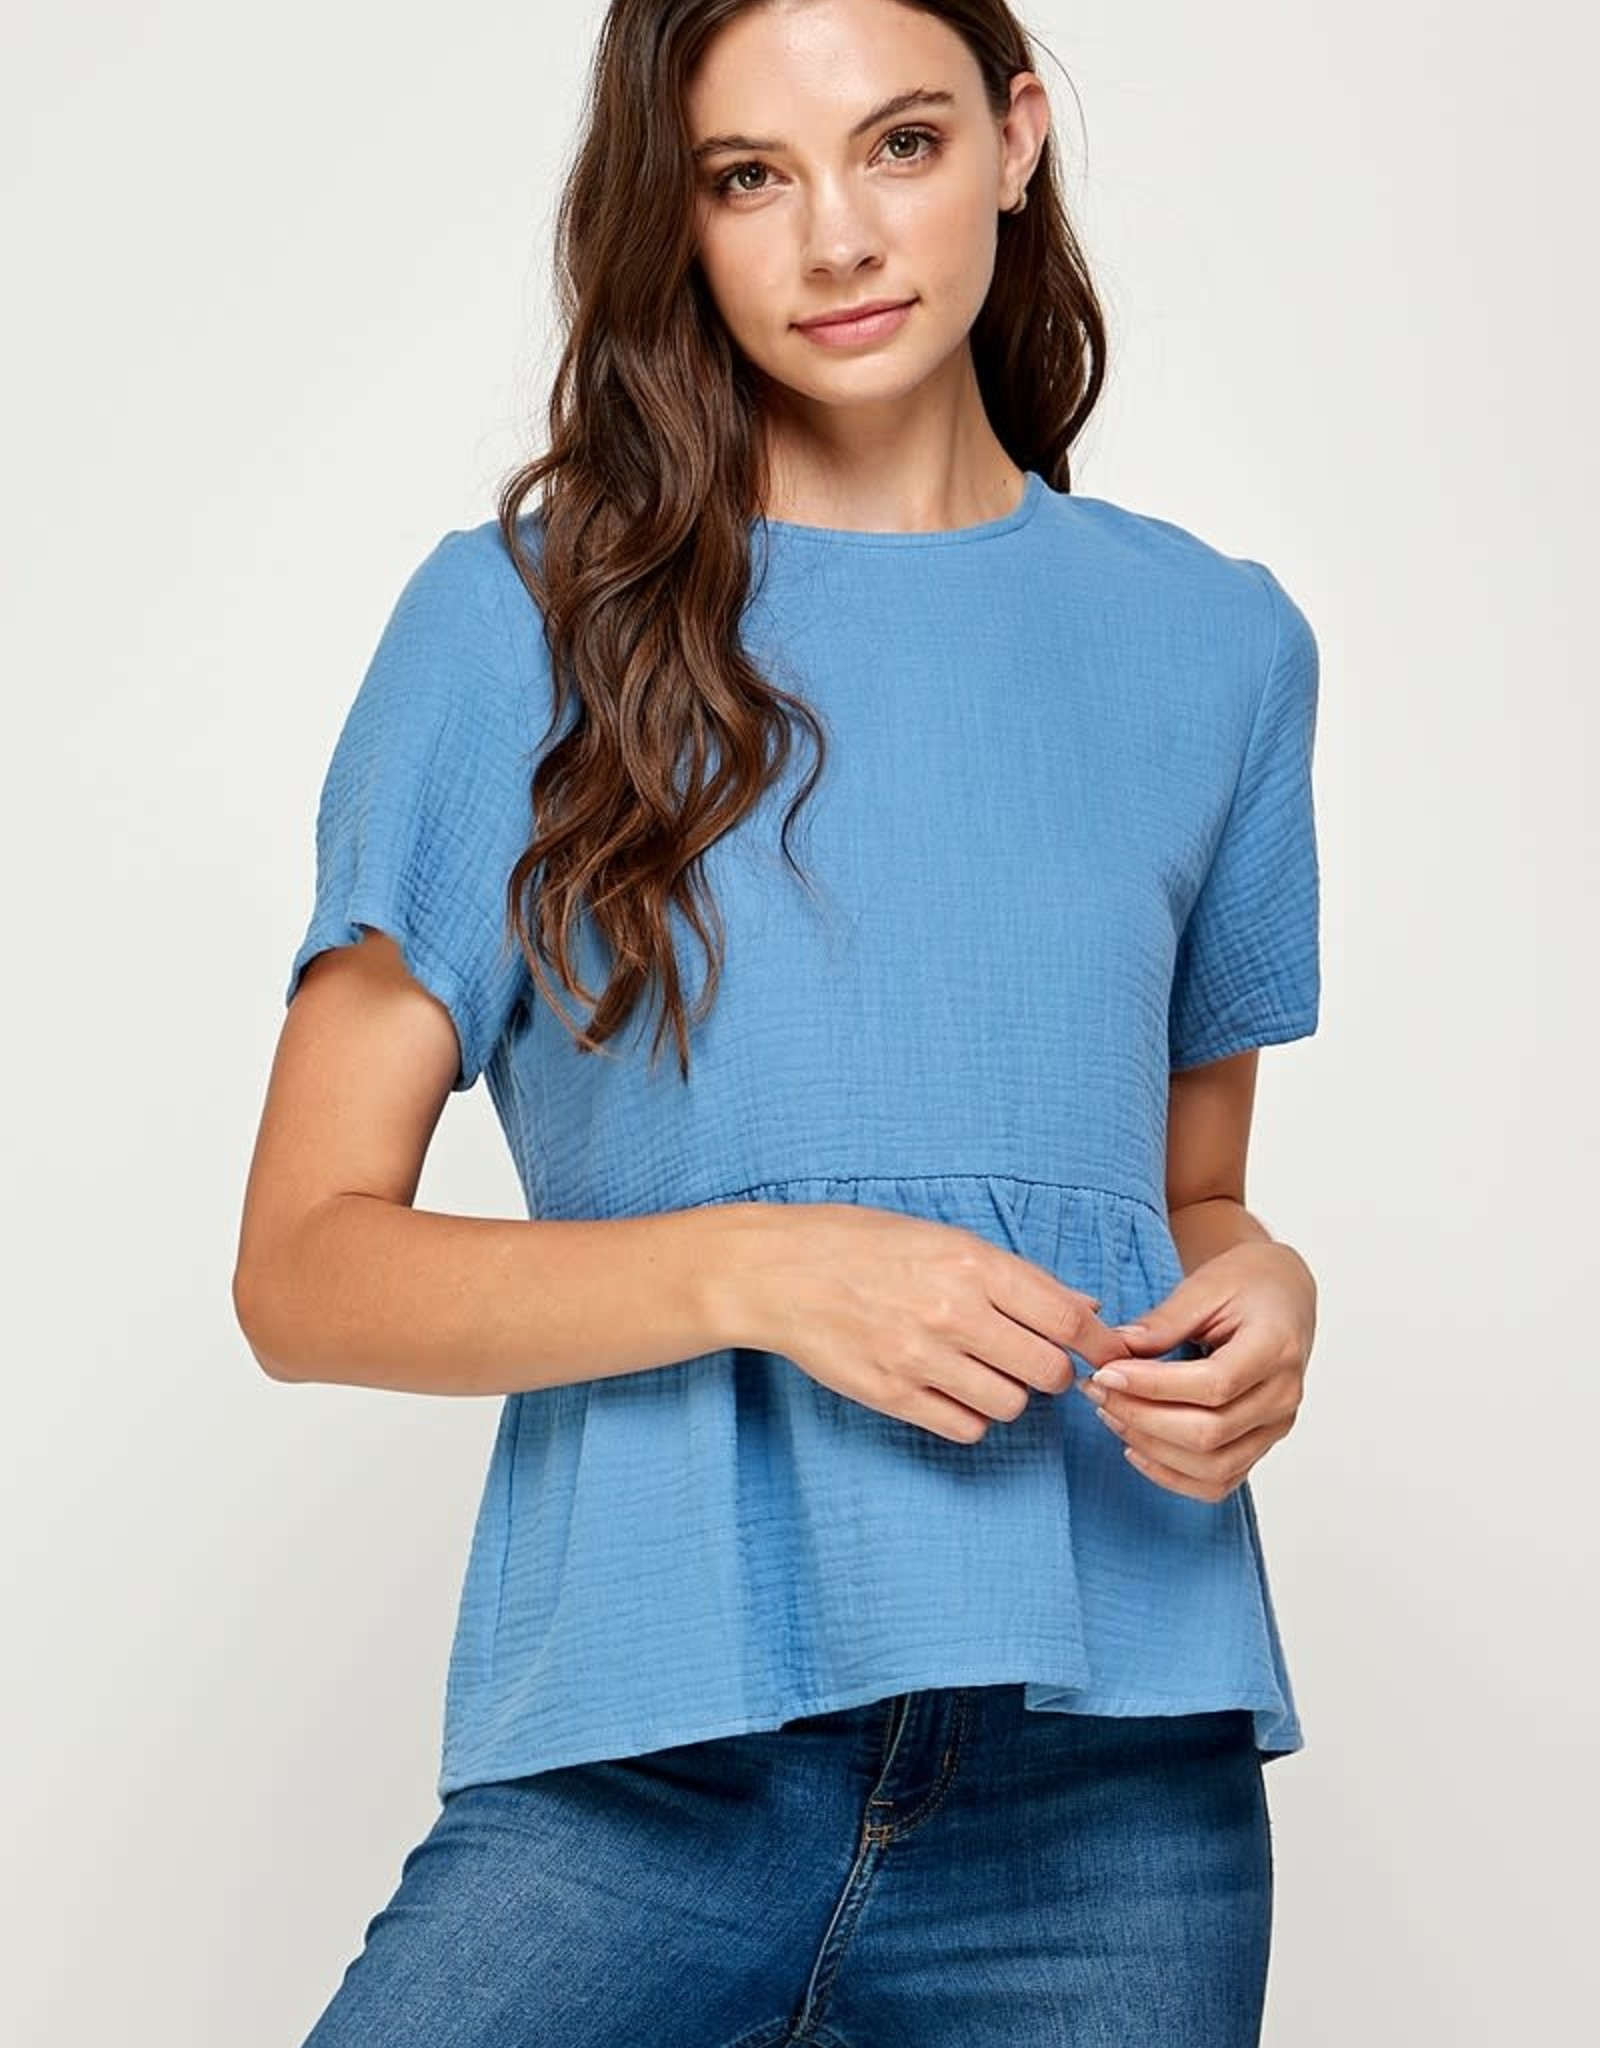 Miss Bliss Cotton Gauze Ruffle Top With Button Back- Denim Blue